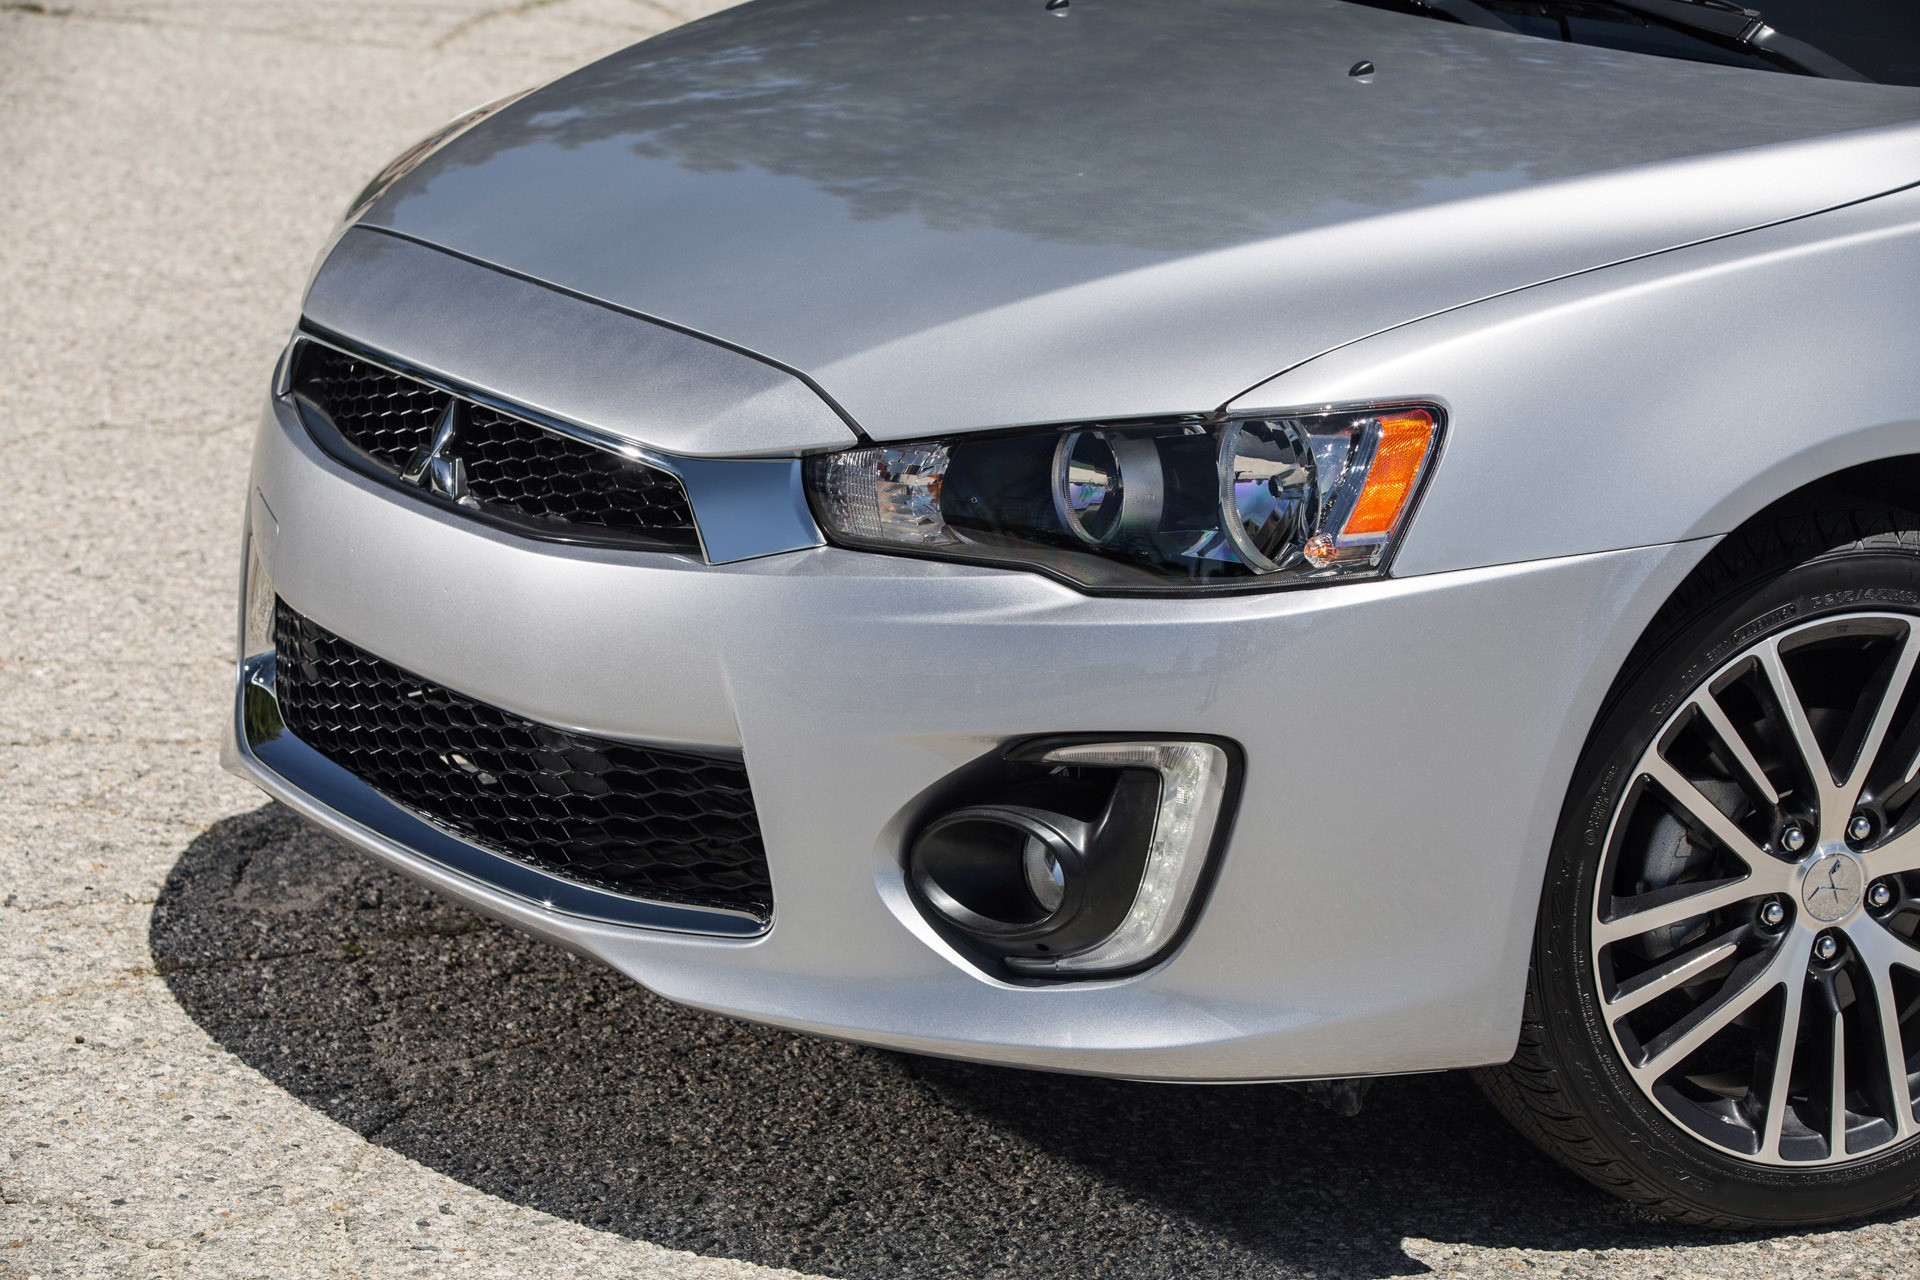 2016 Mitsubishi Lancer Revealed With Tweaked Bumper And